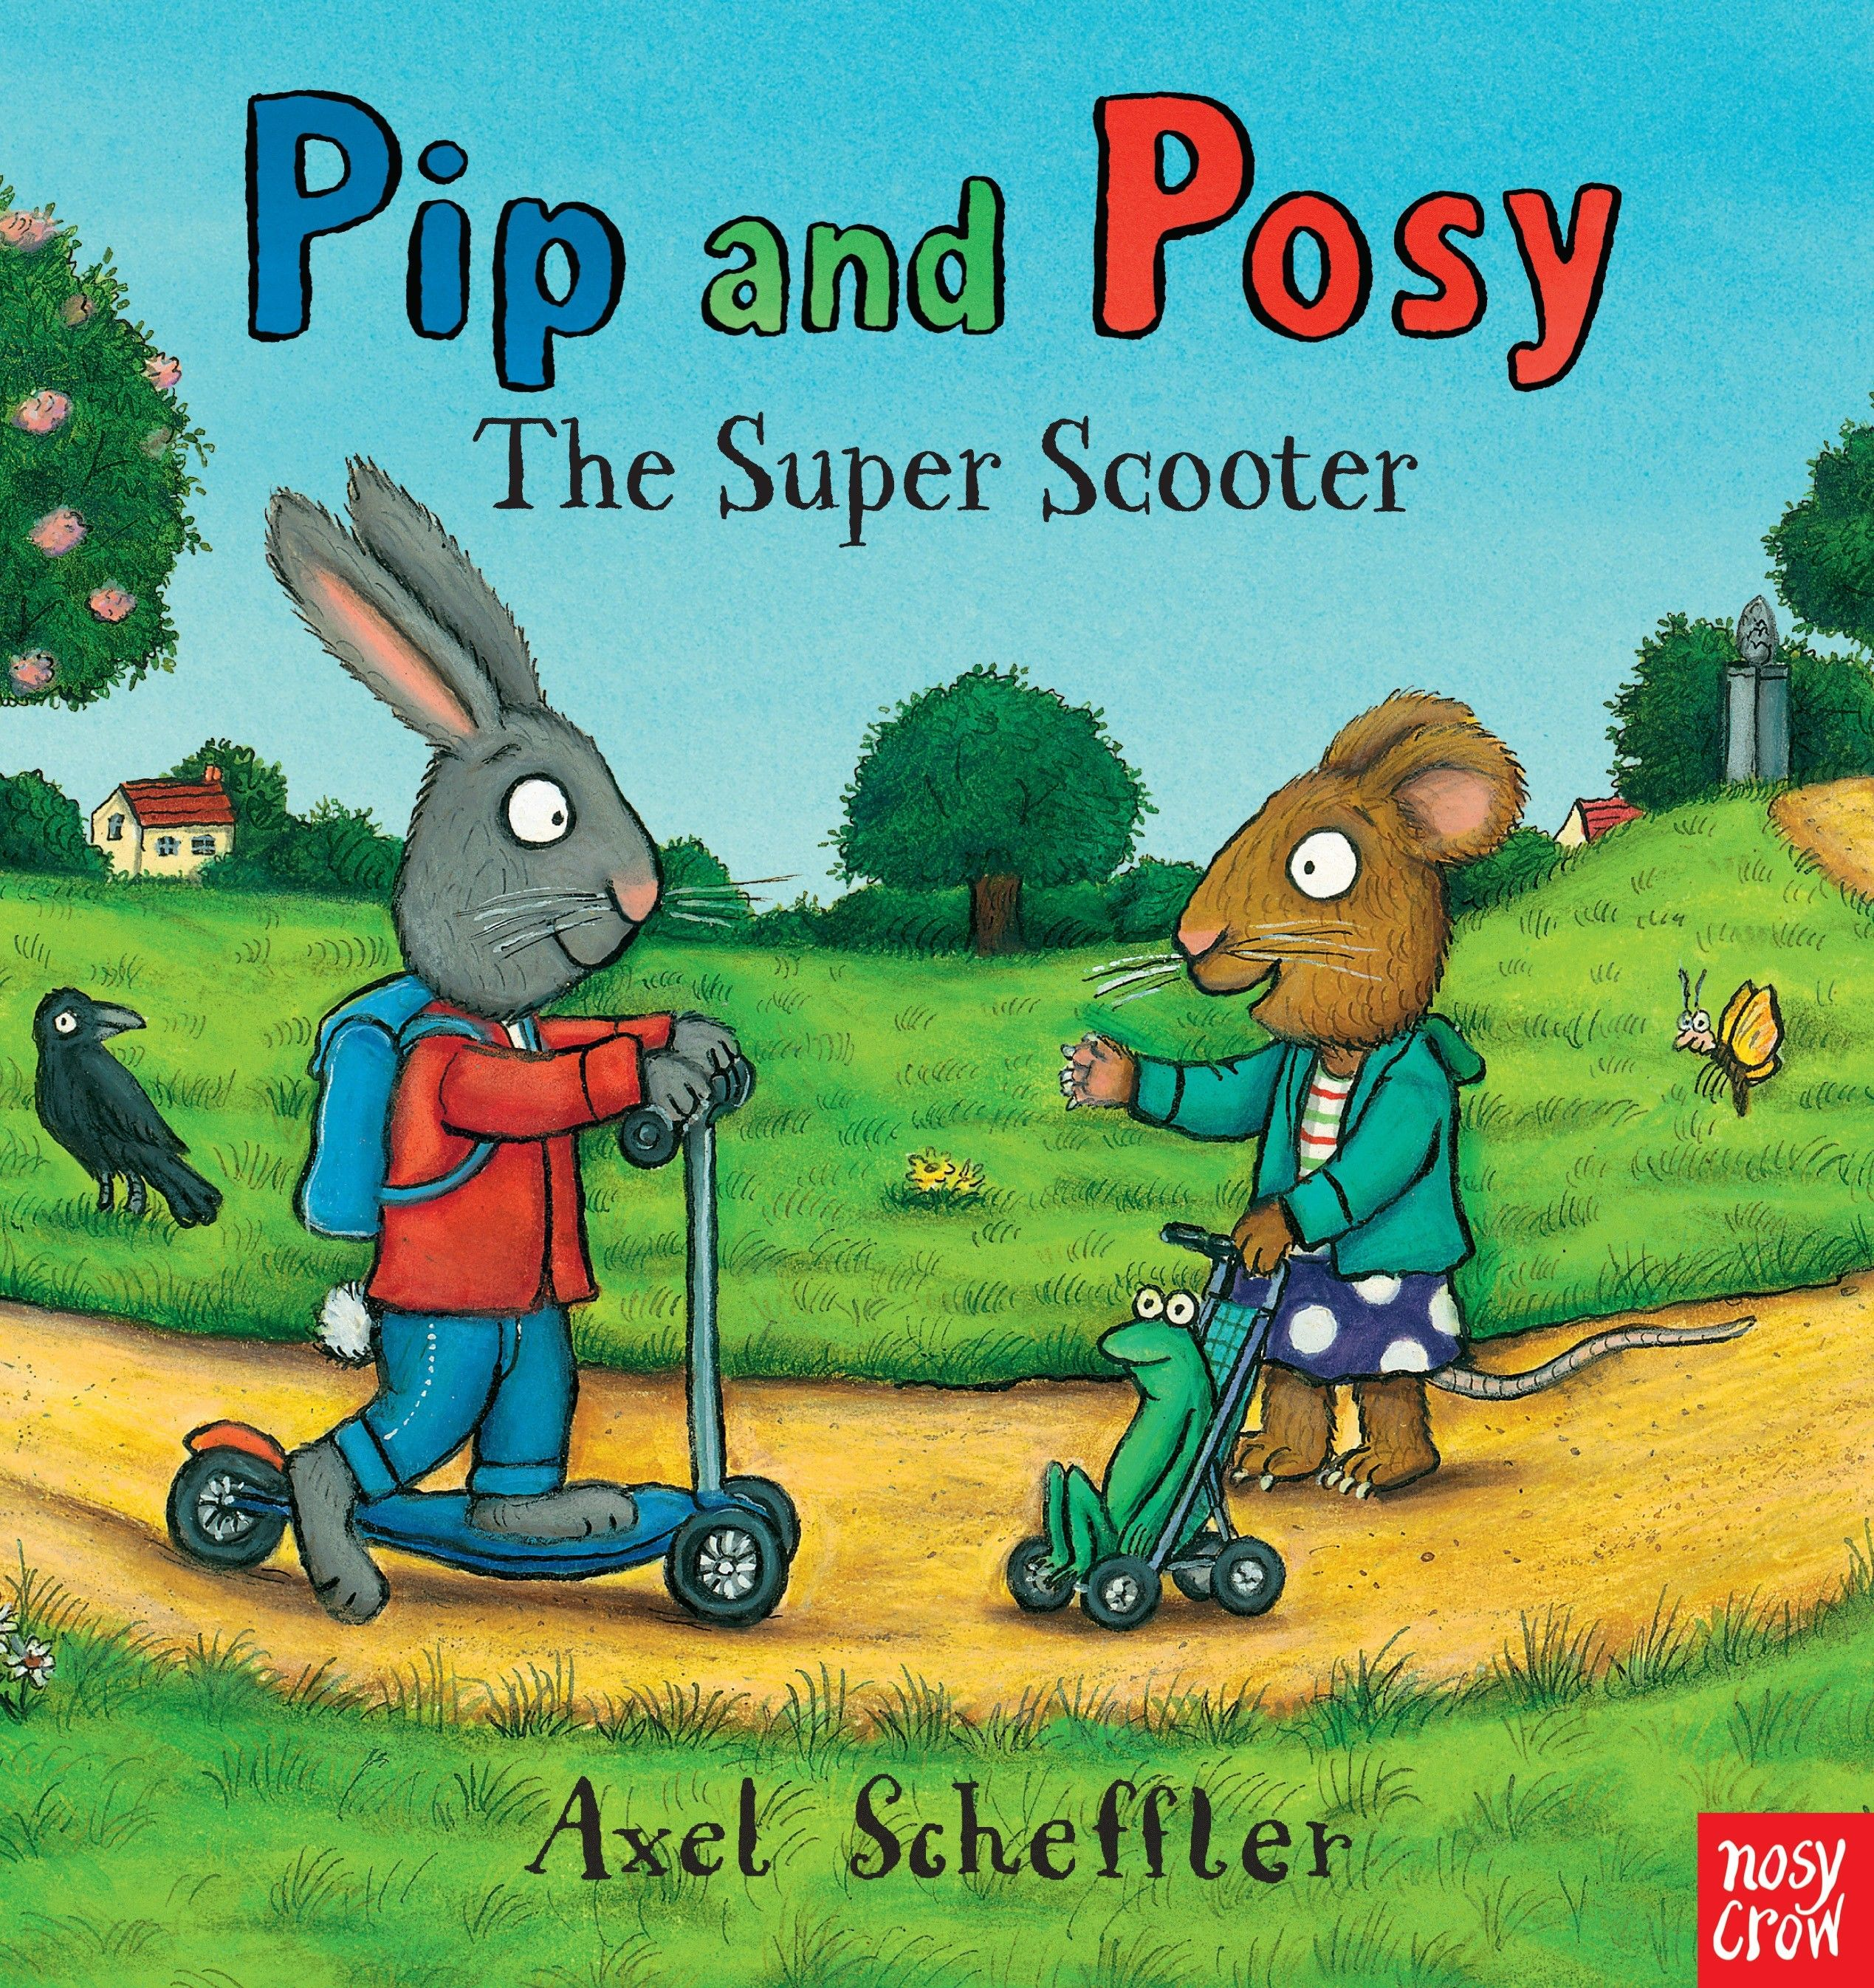 Pip and Posy: The Super Scooter - Three cheers for Axel Schefffler for creating a beautifully illustrated, heartfelt tale toddlers can relate to